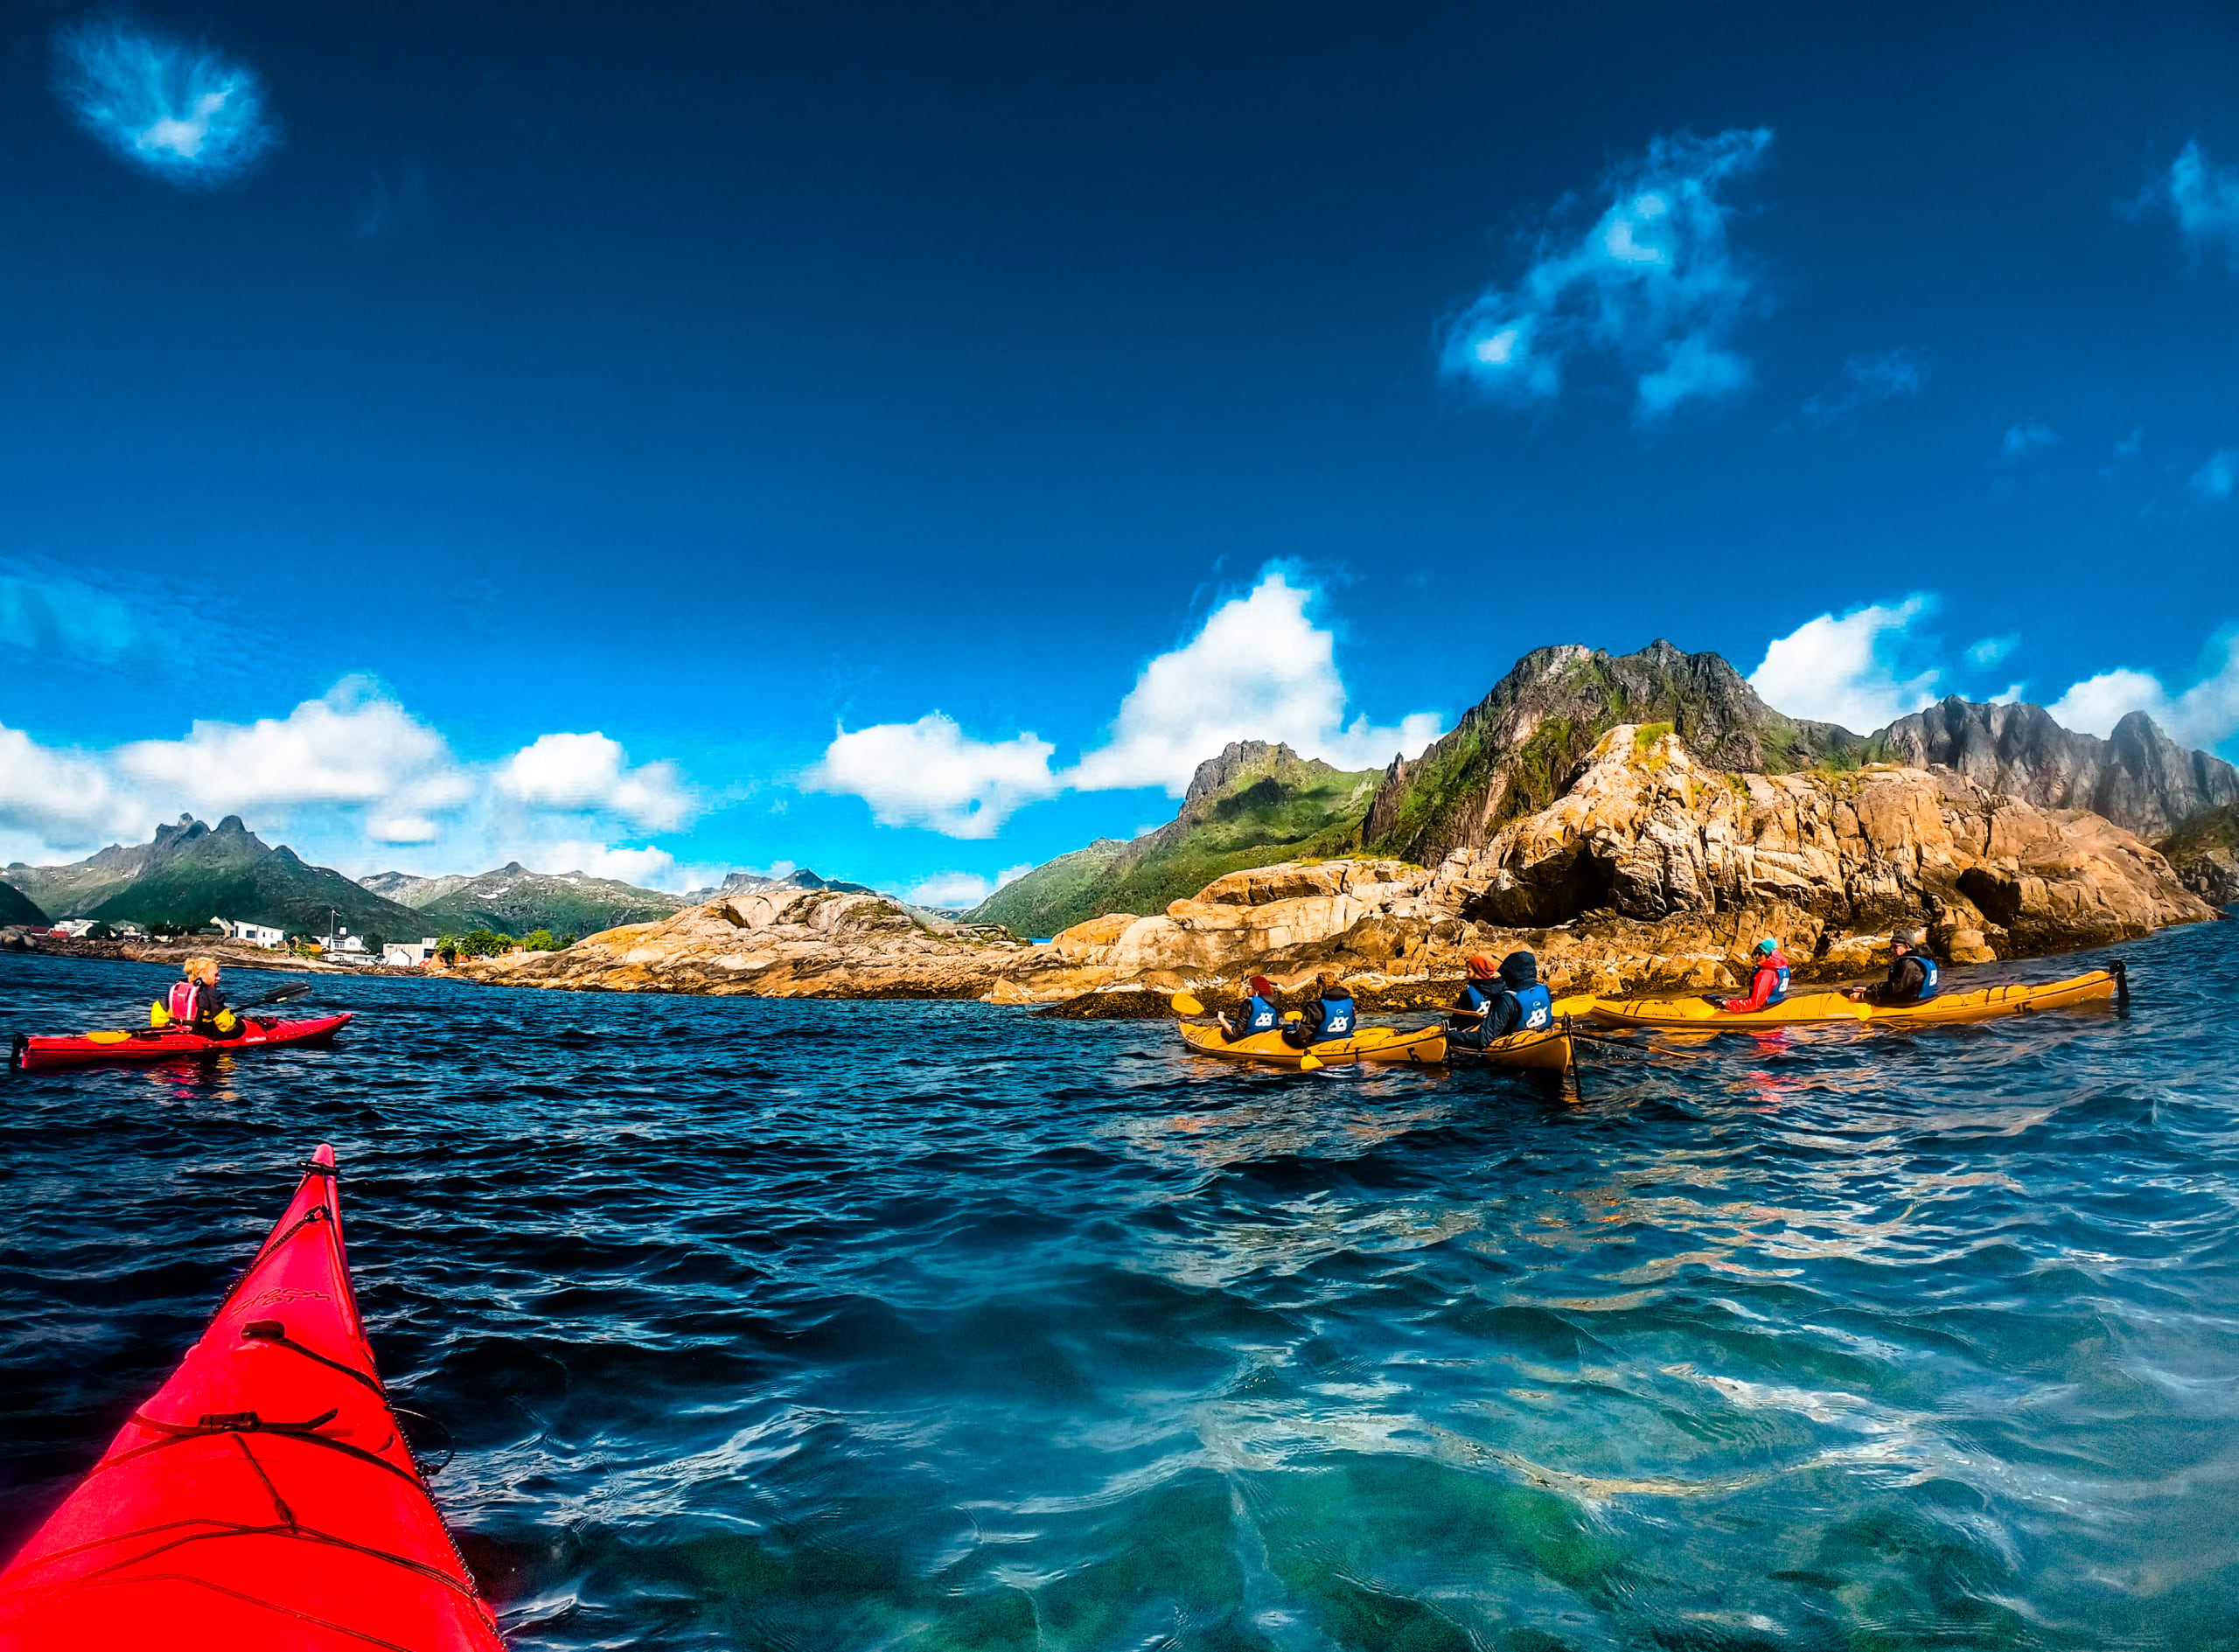 The tip of a red kayak facing 3 other kayaks in the crystal clear turquoise waters in Lofoten with steep mountains in the background.